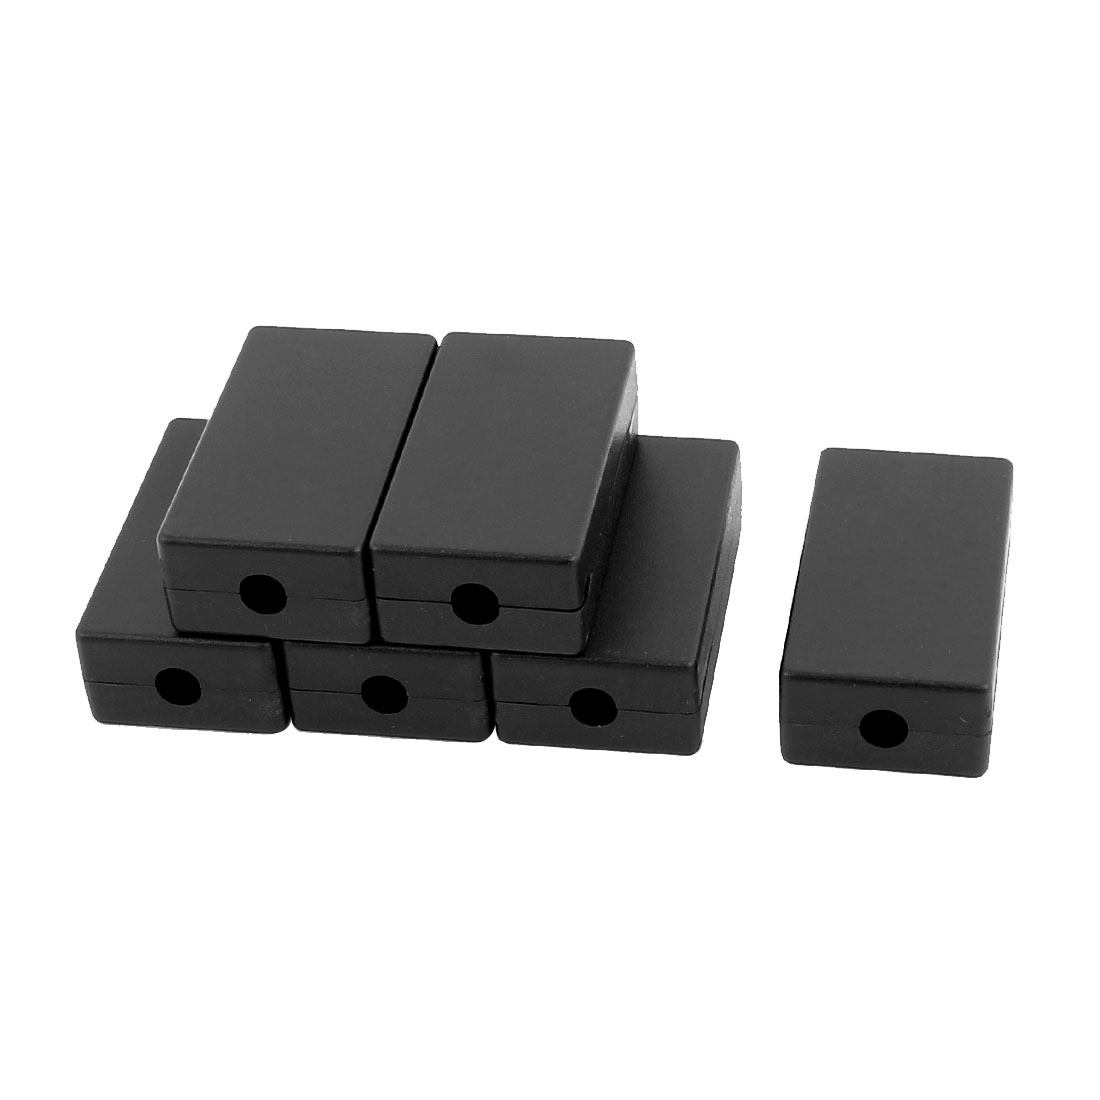 48mm x 26mm x 15mm Plasitc Junction Box in Rectangular Shape Black